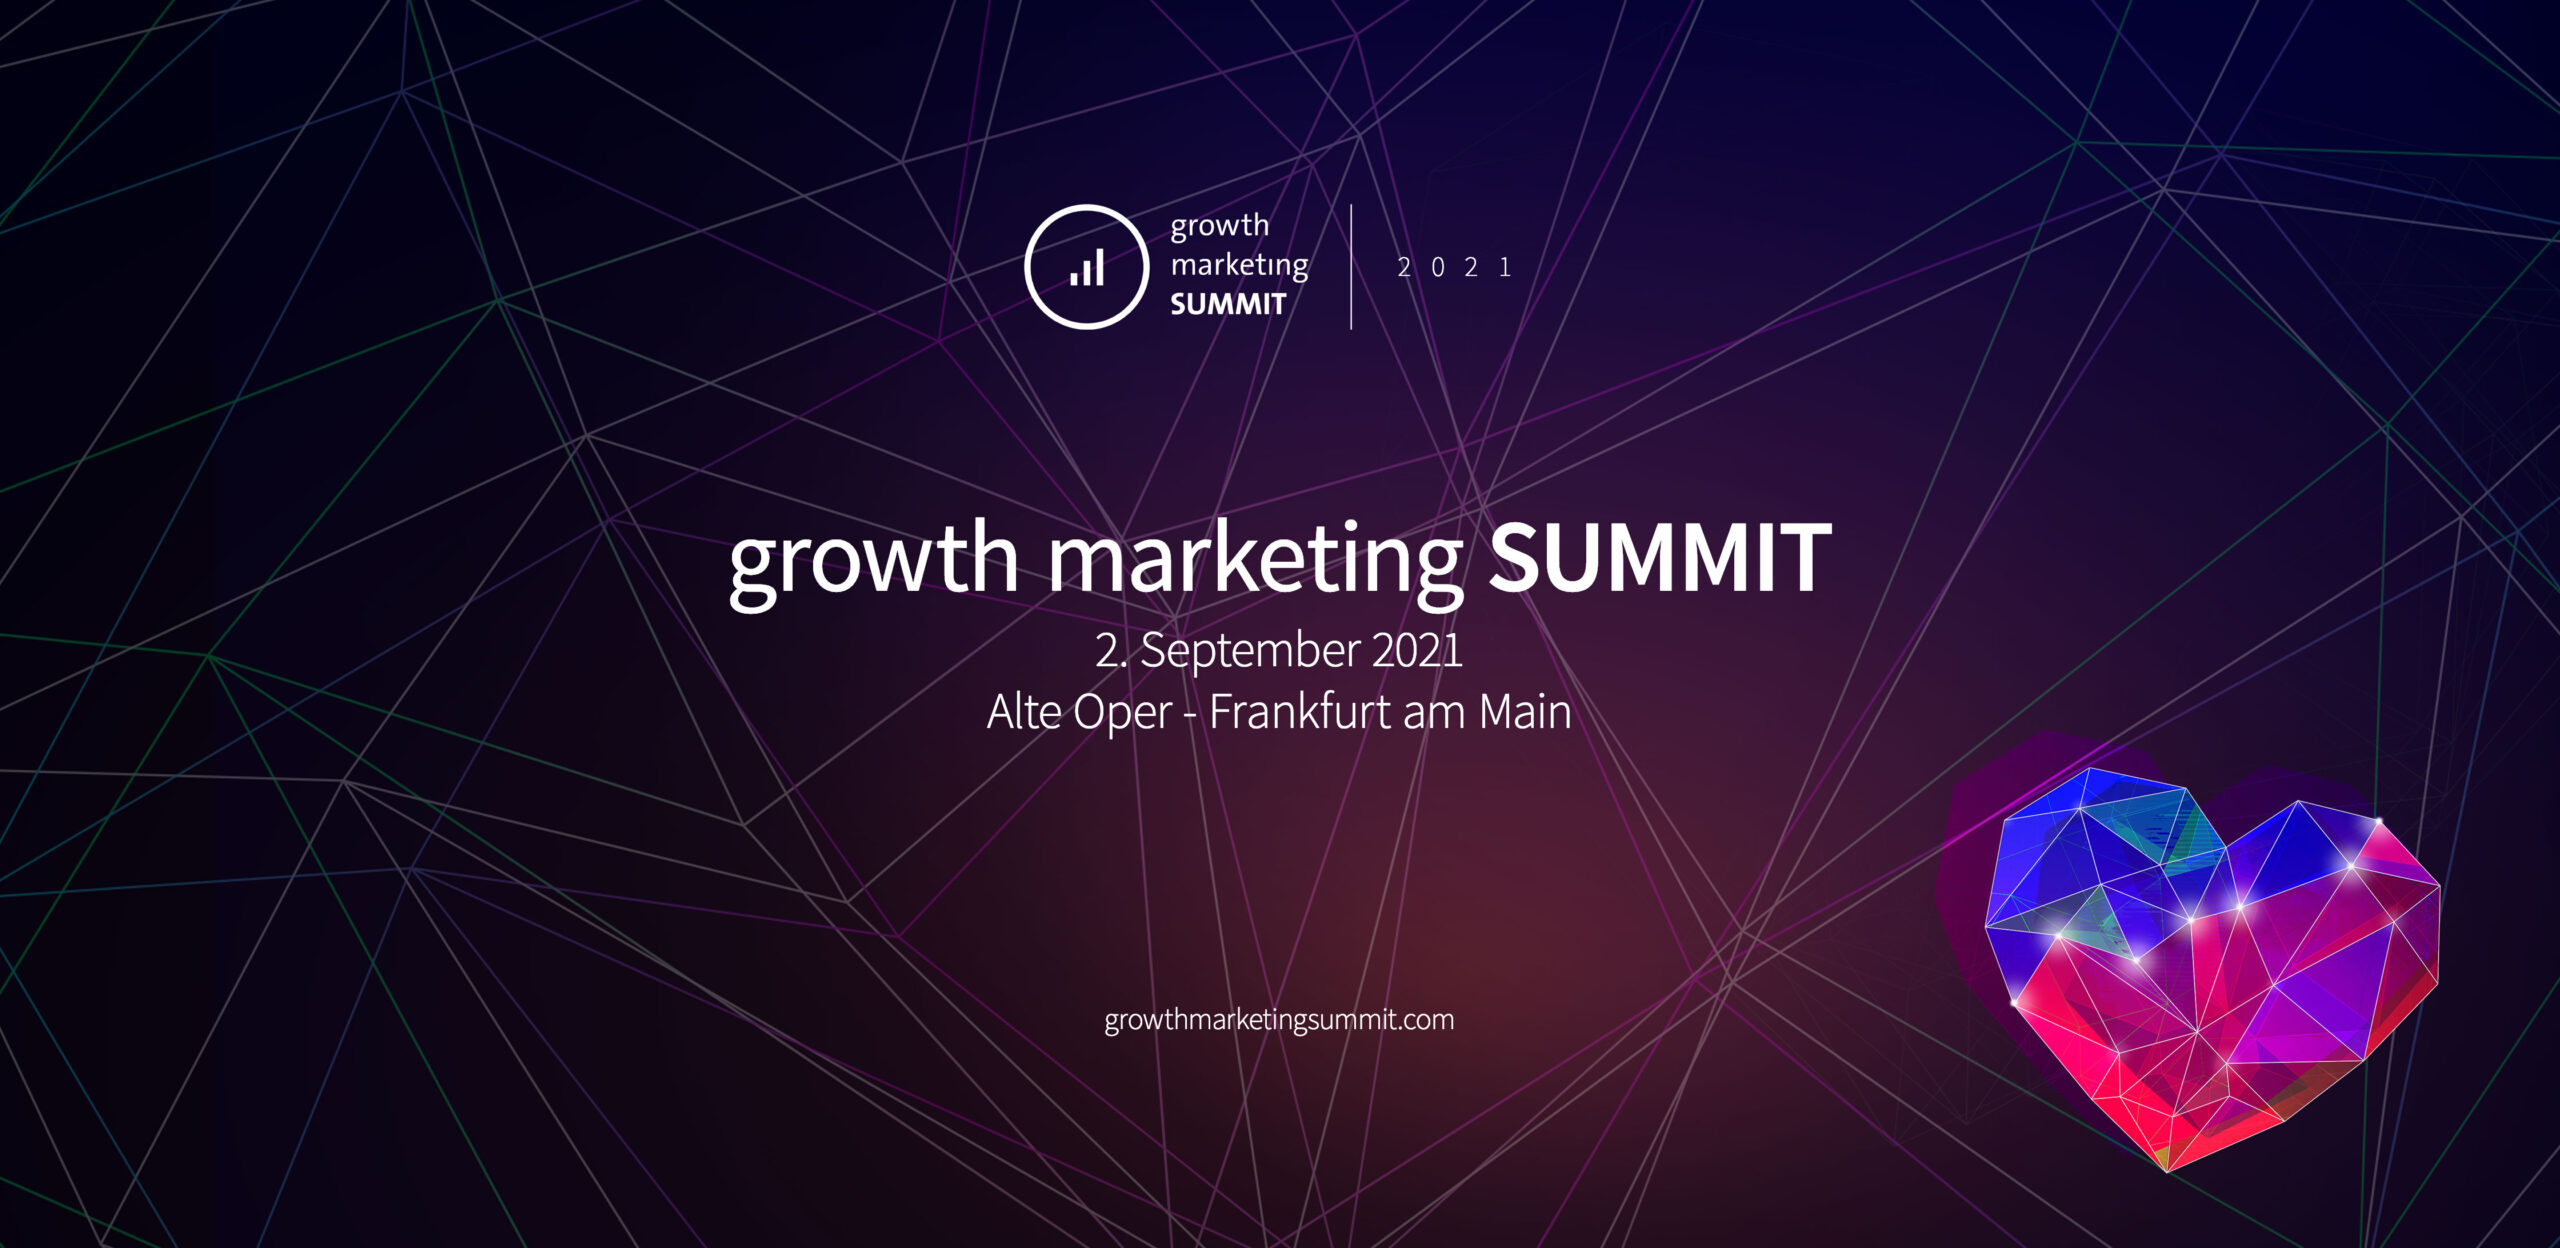 growth marketing SUMMIT 2021